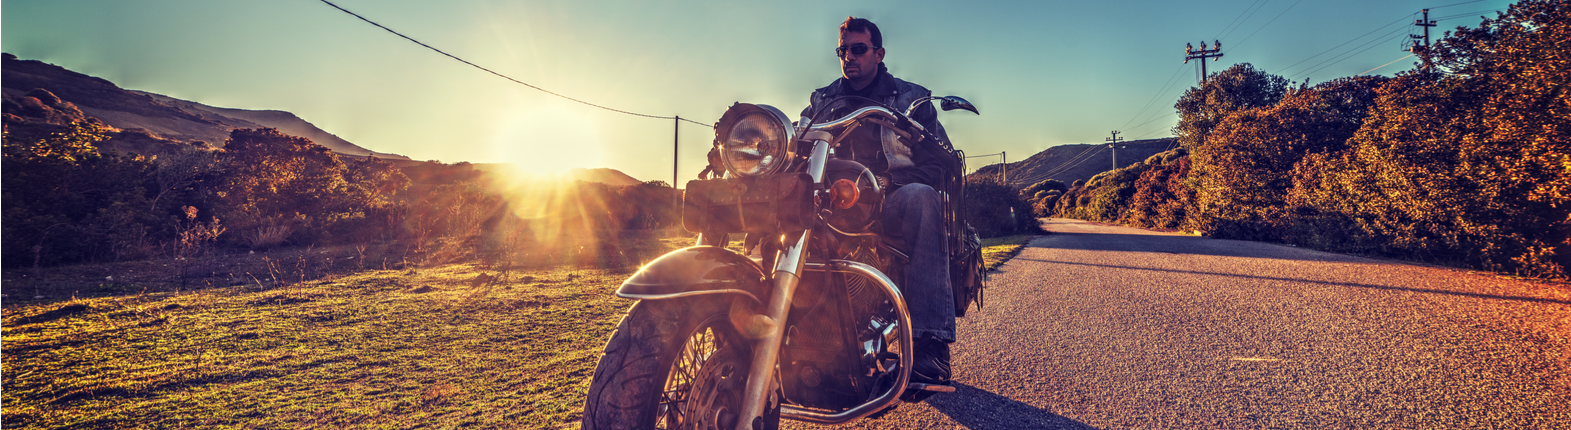 Motorcycle Insurance in California